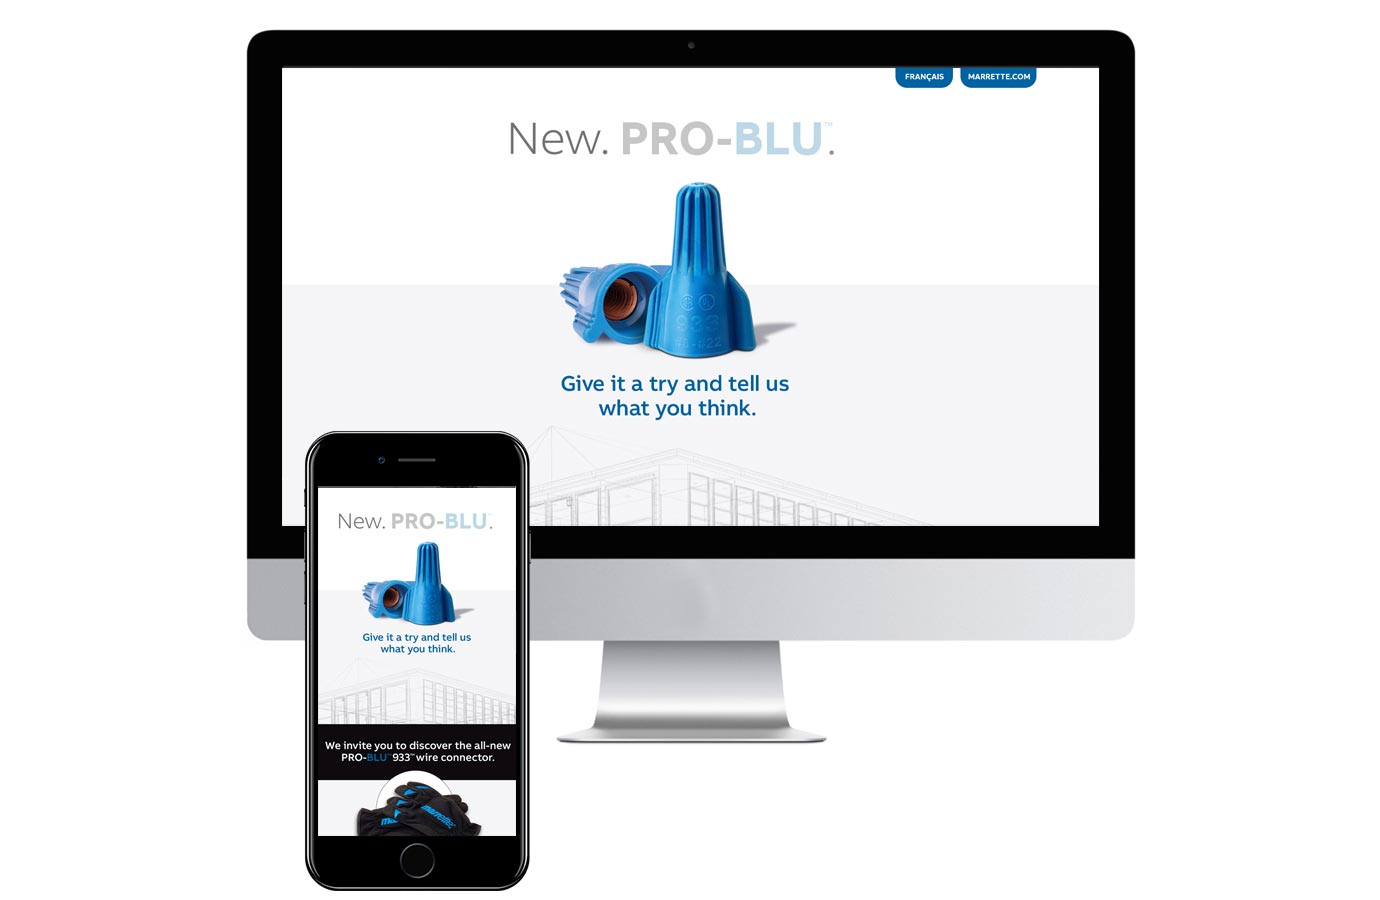 Marketing digital pour produit Pro-Blu de ABB